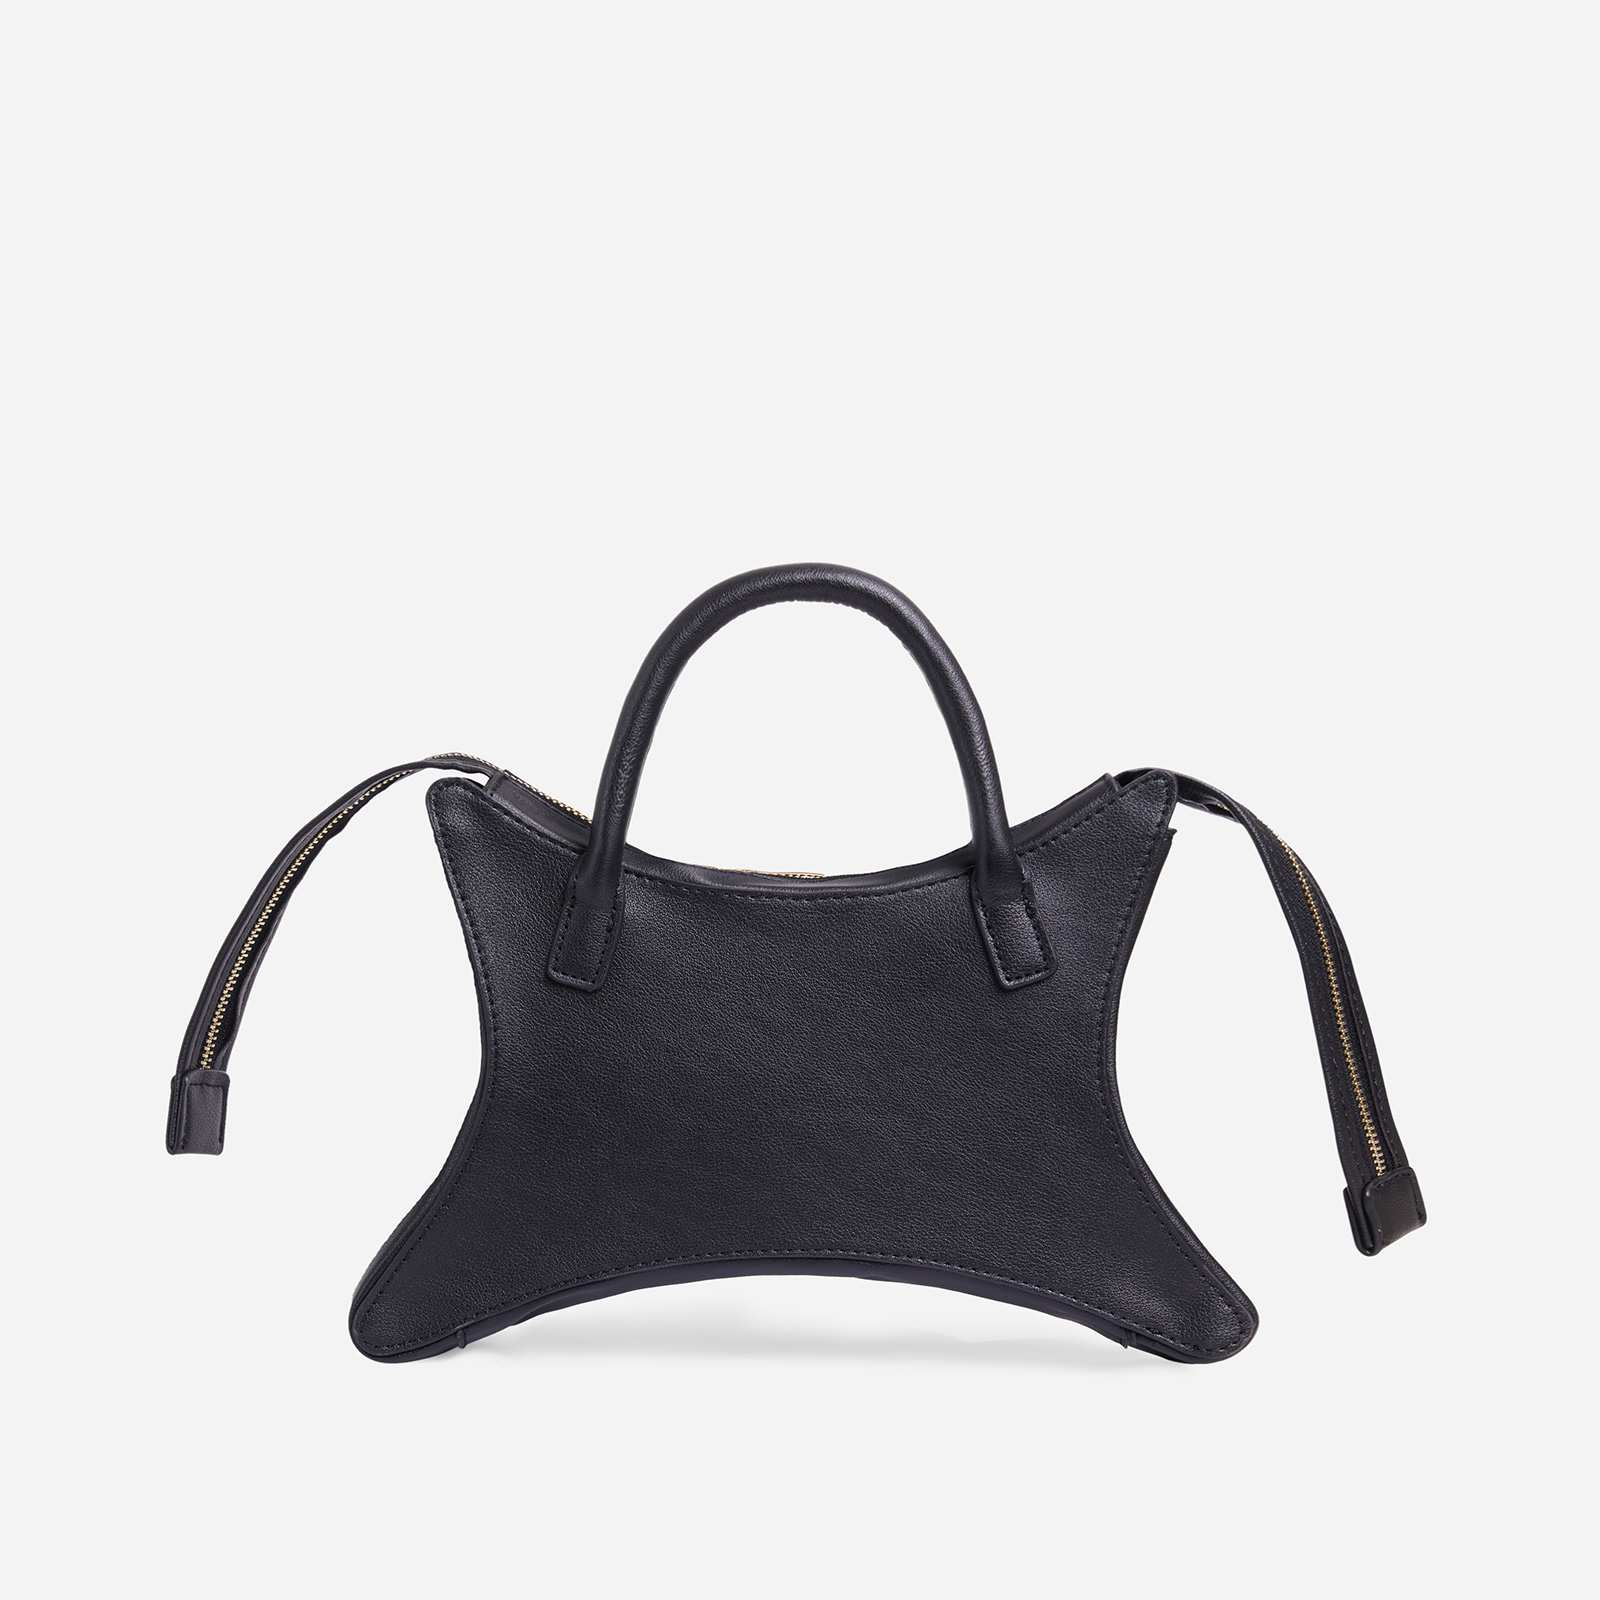 Ike Shaped Grab Bag In Black Faux Leather